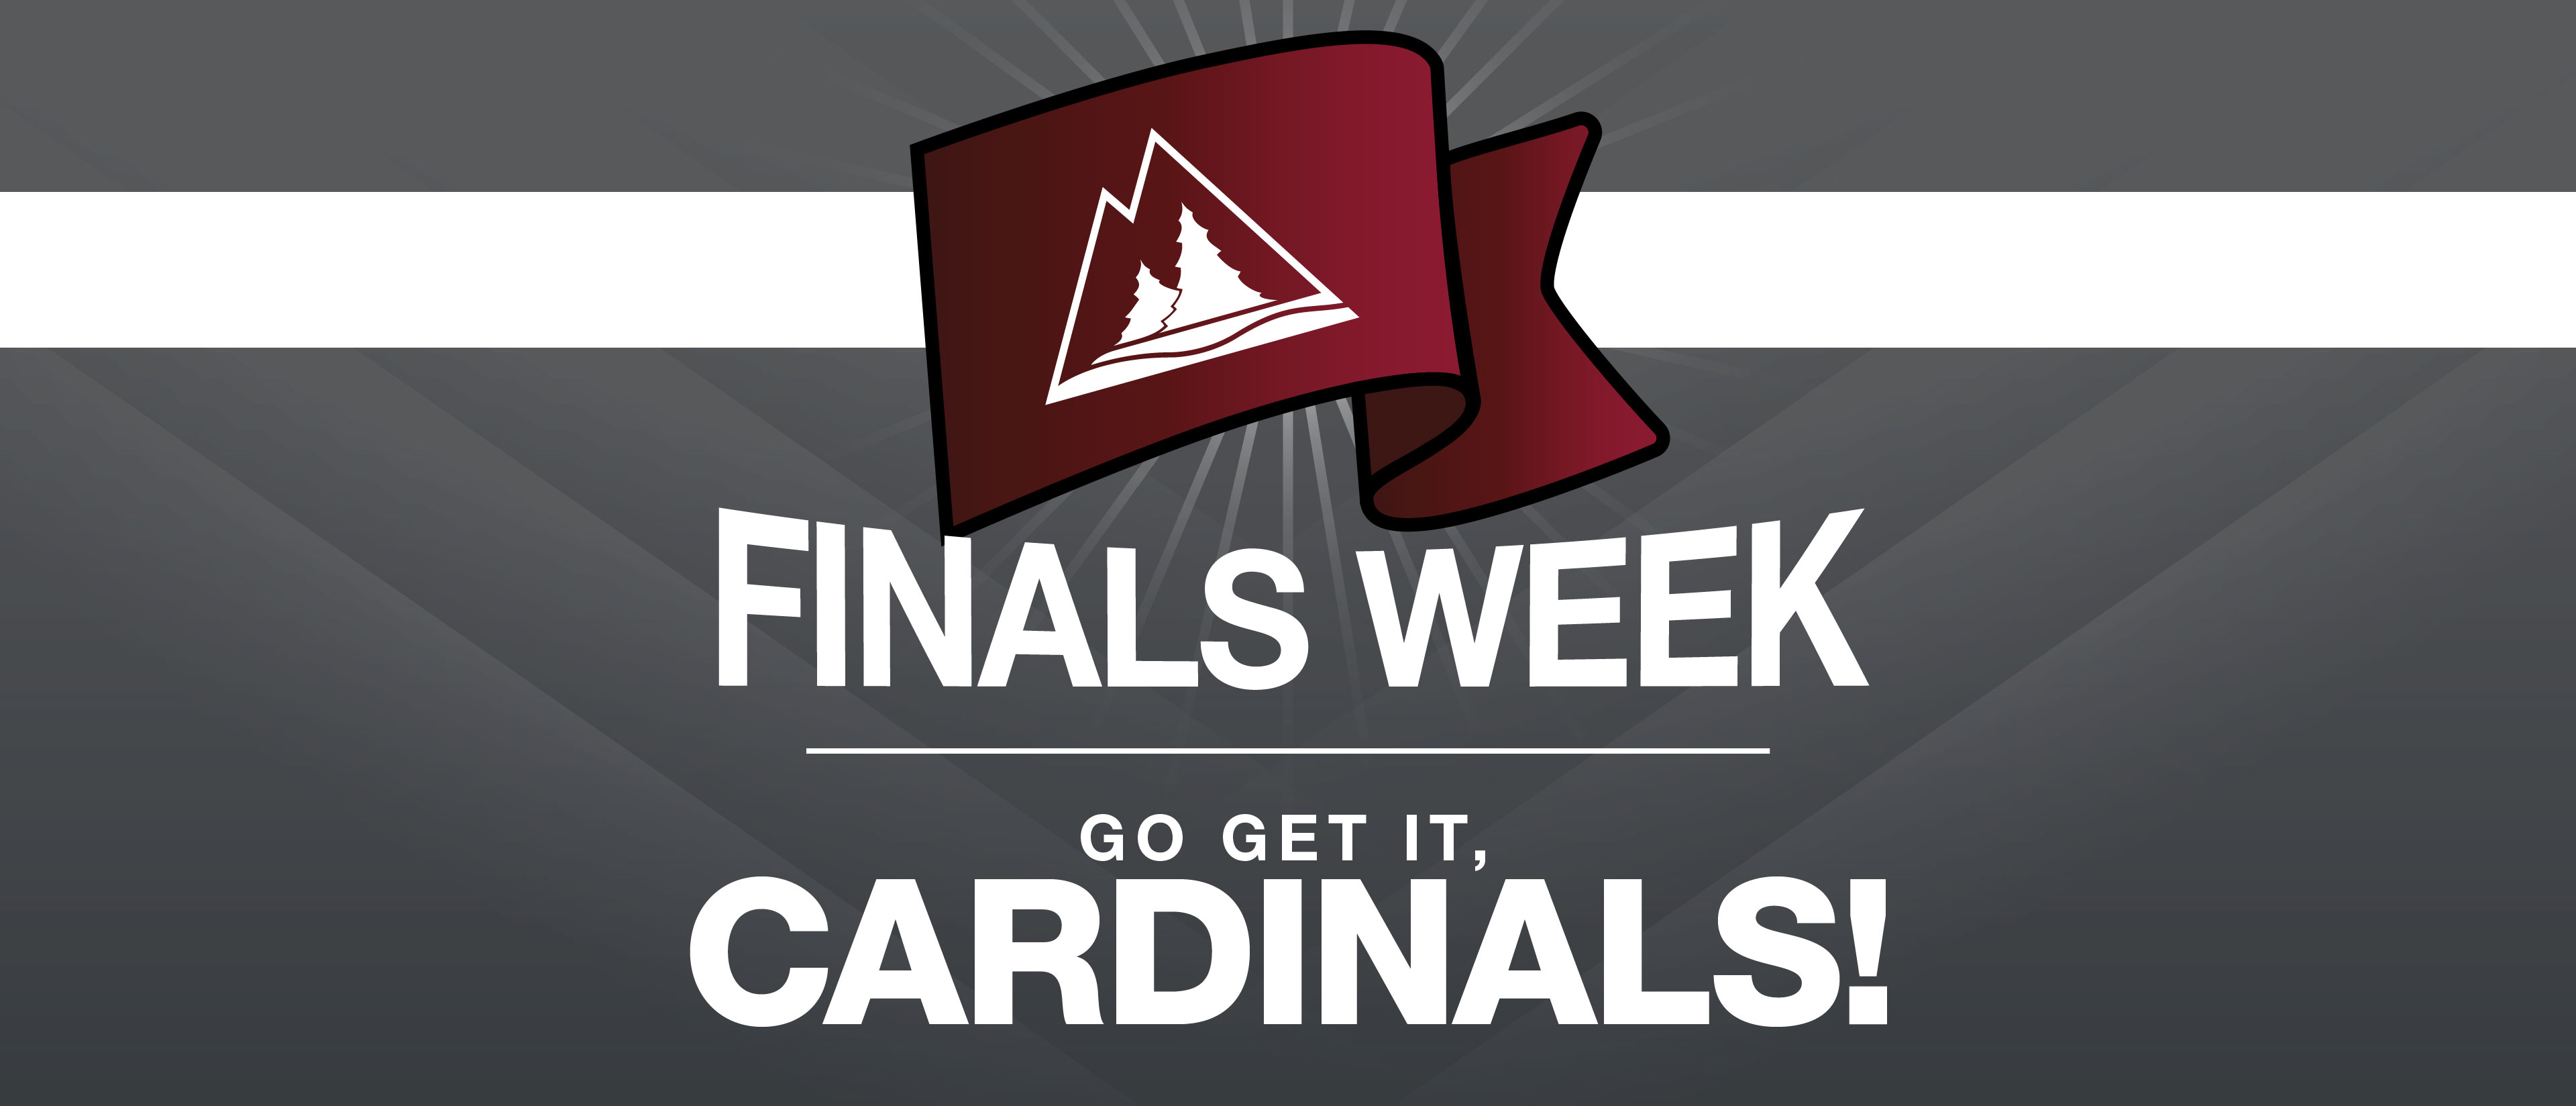 Finals Week, Go Get it, Cardinals!